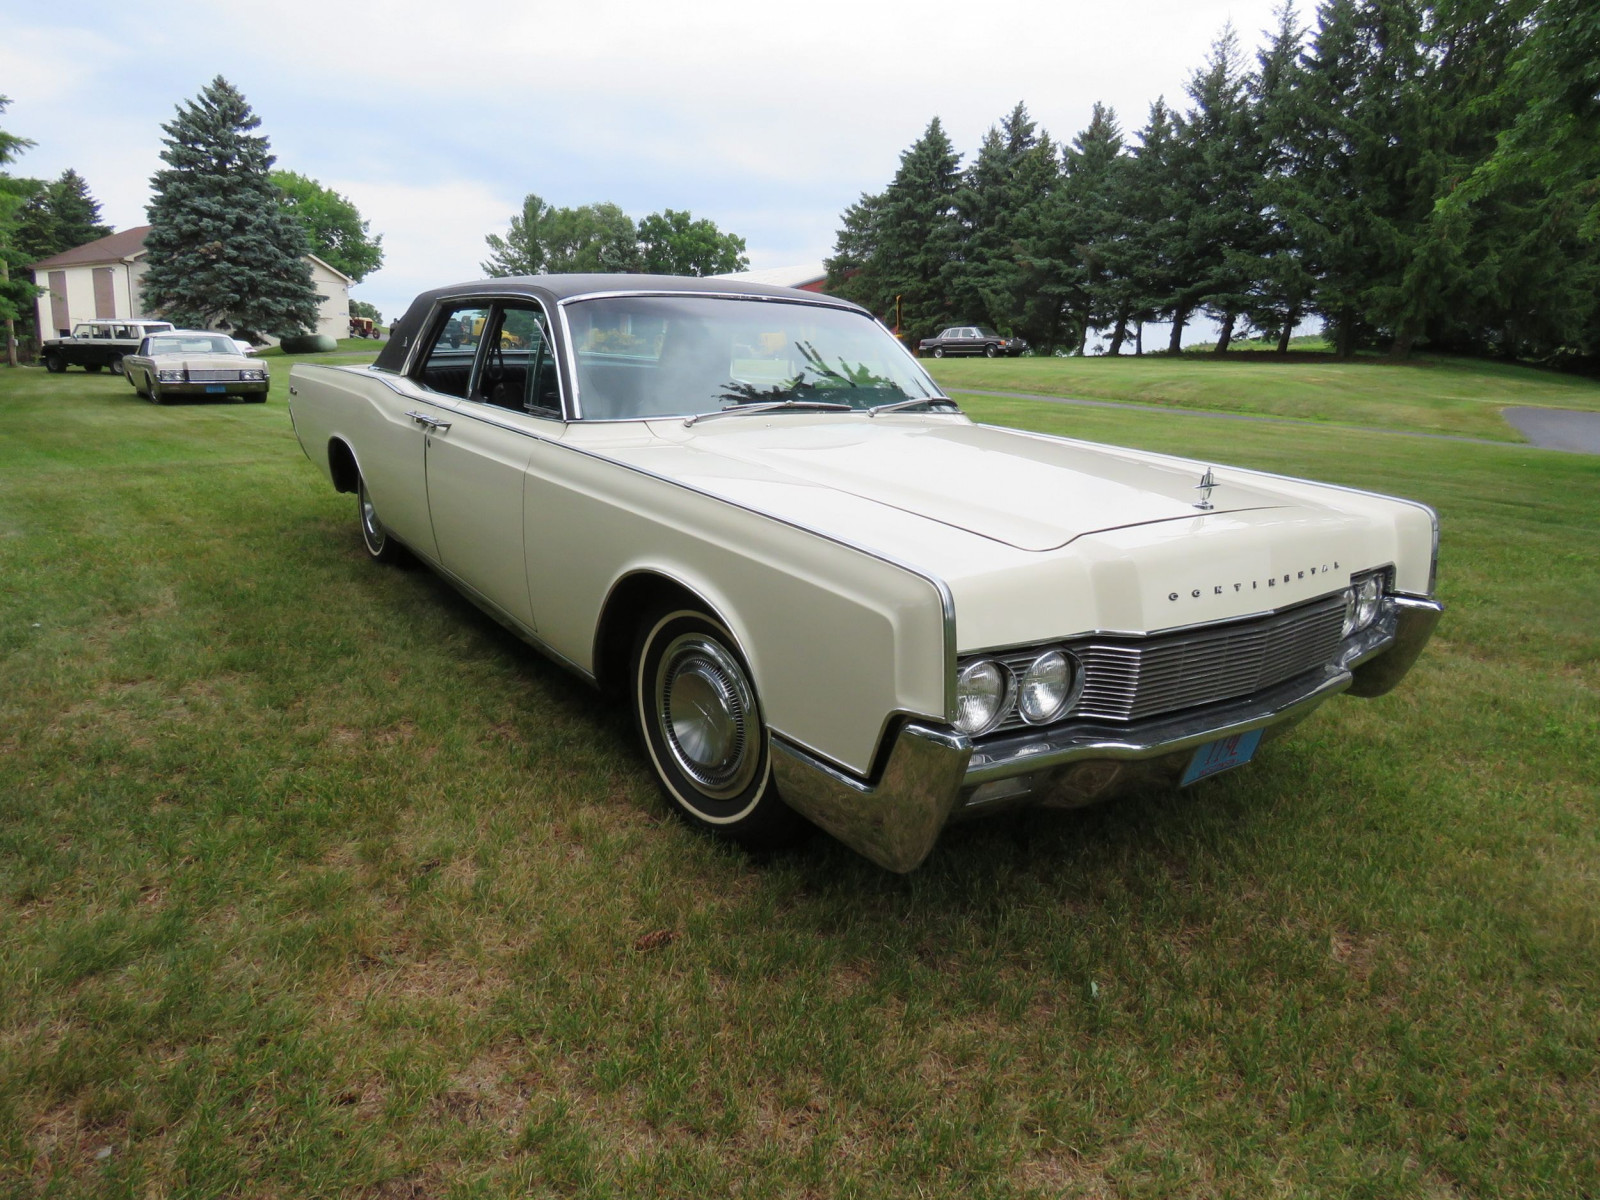 1967 Lincoln Continental 4dr HT Suicide Sedan - Image 3